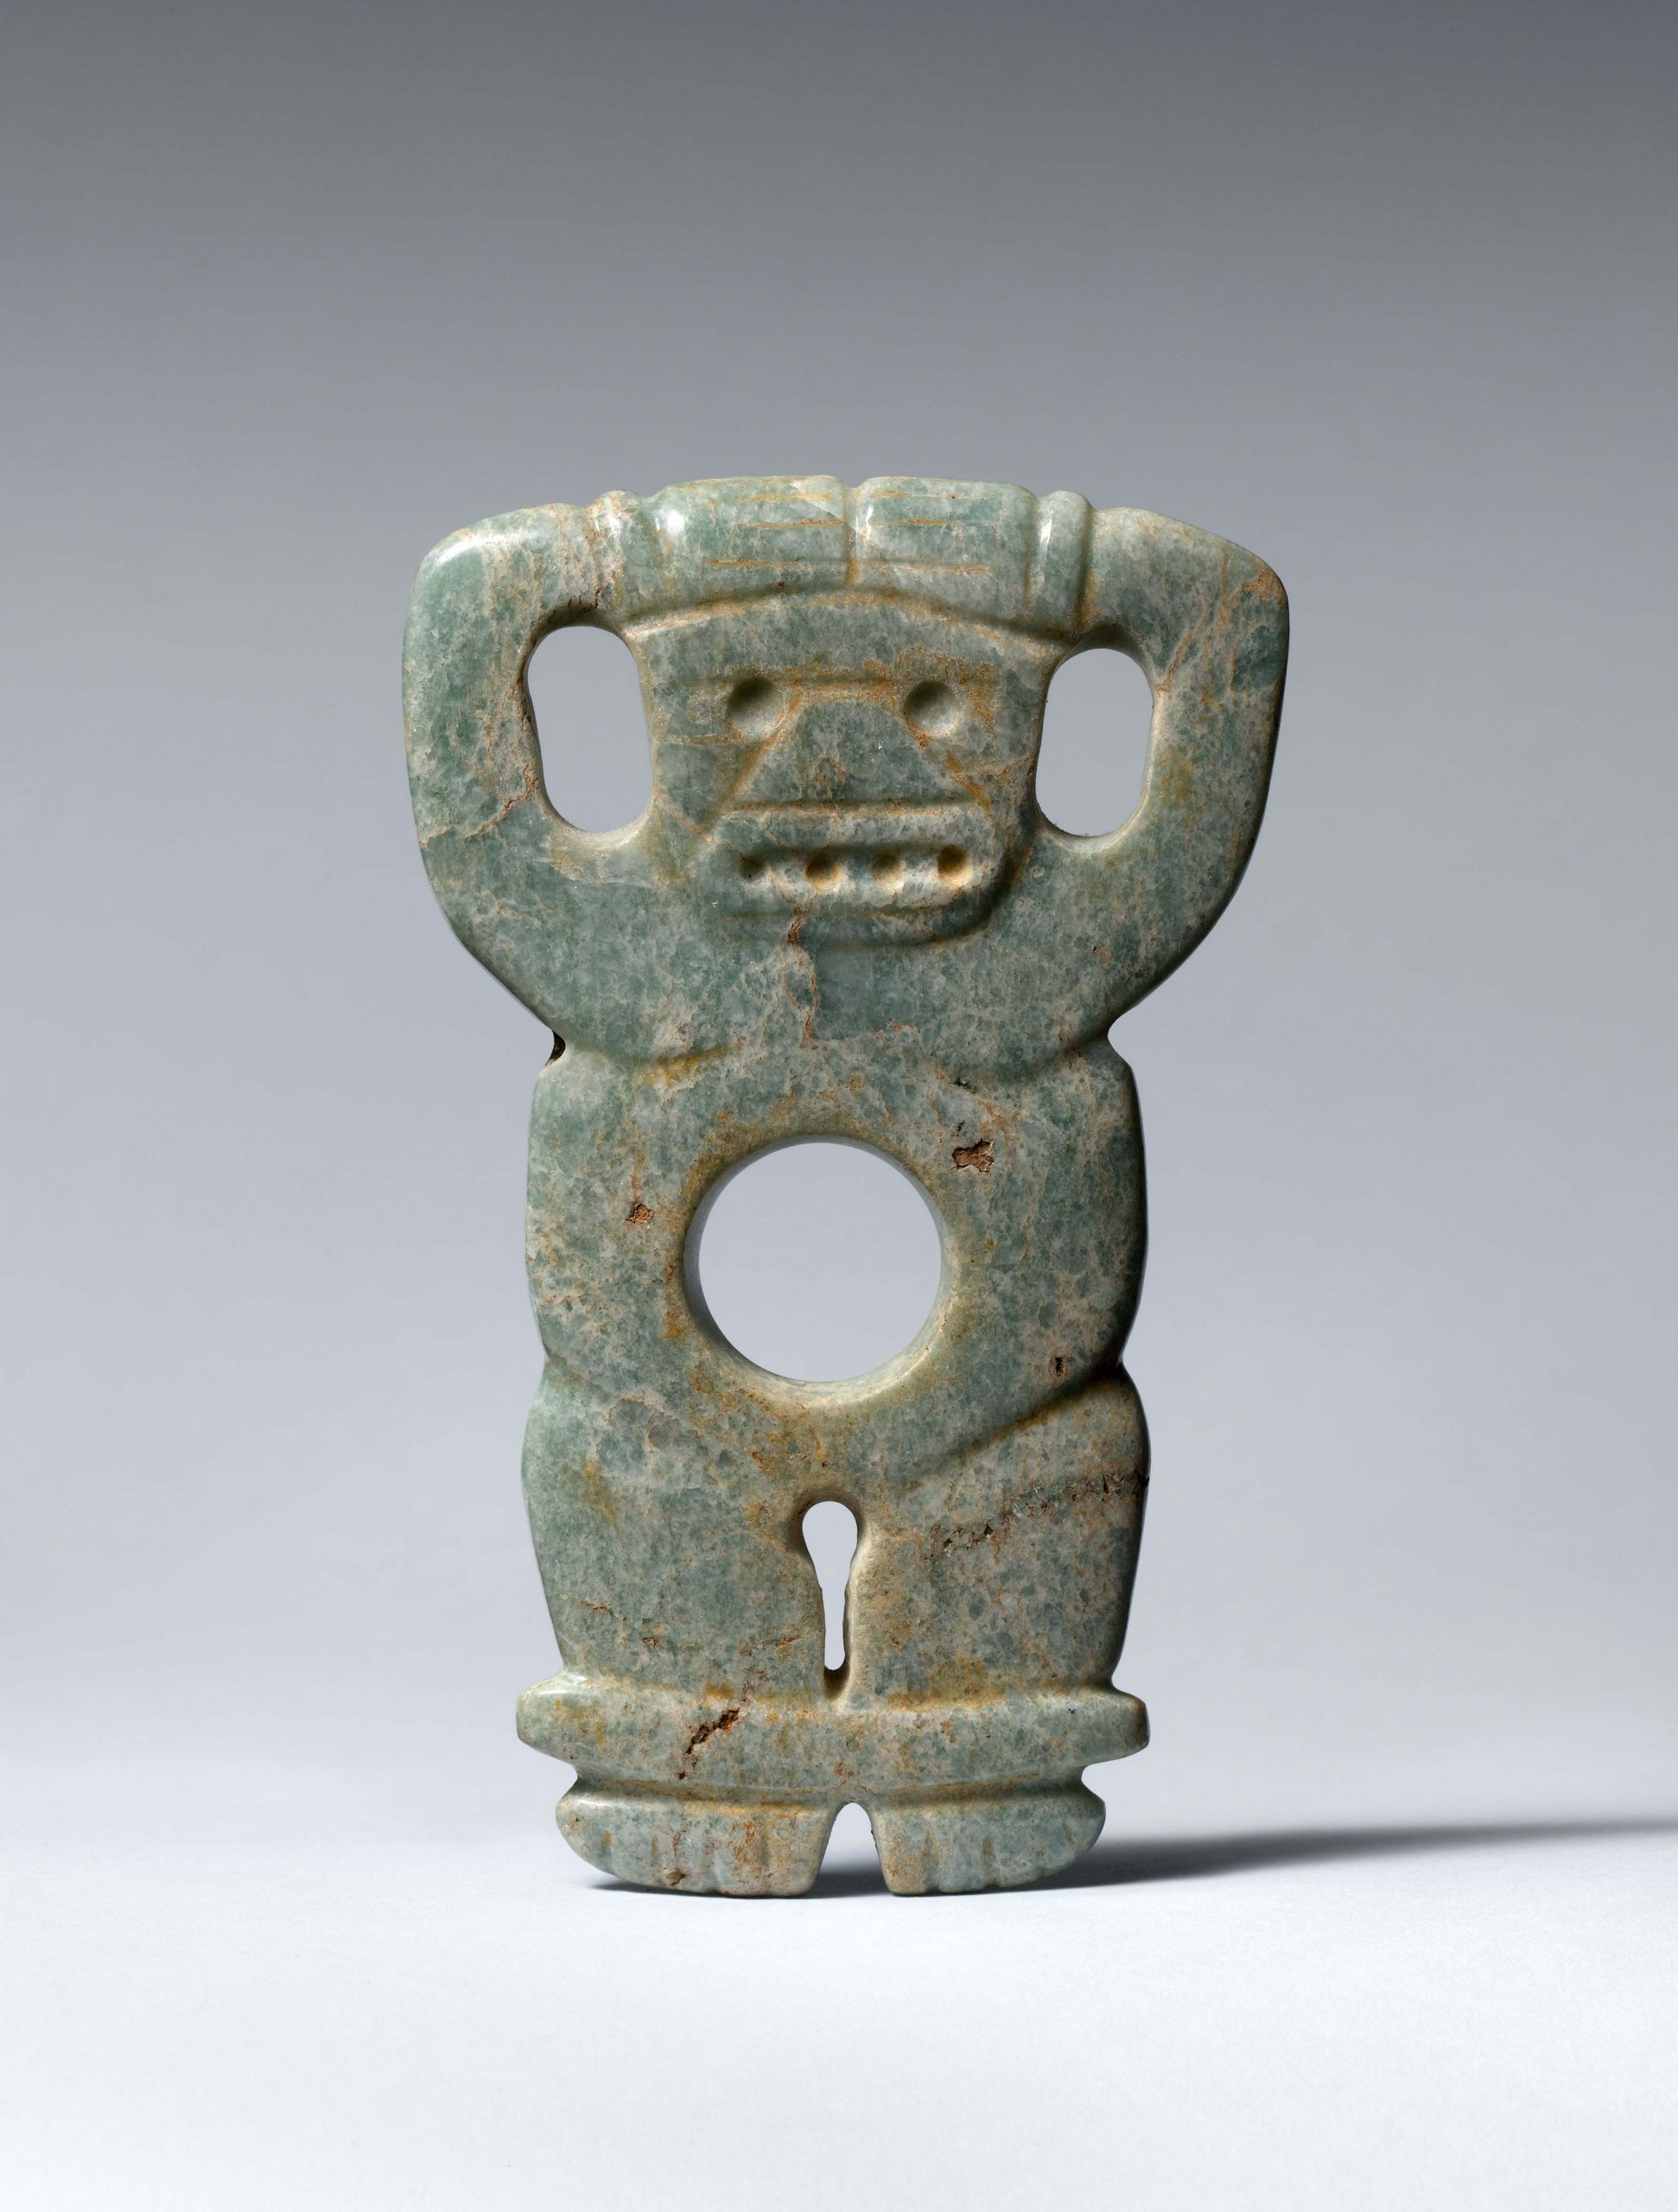 Abstract stone standing figure with human and animal characteristics.